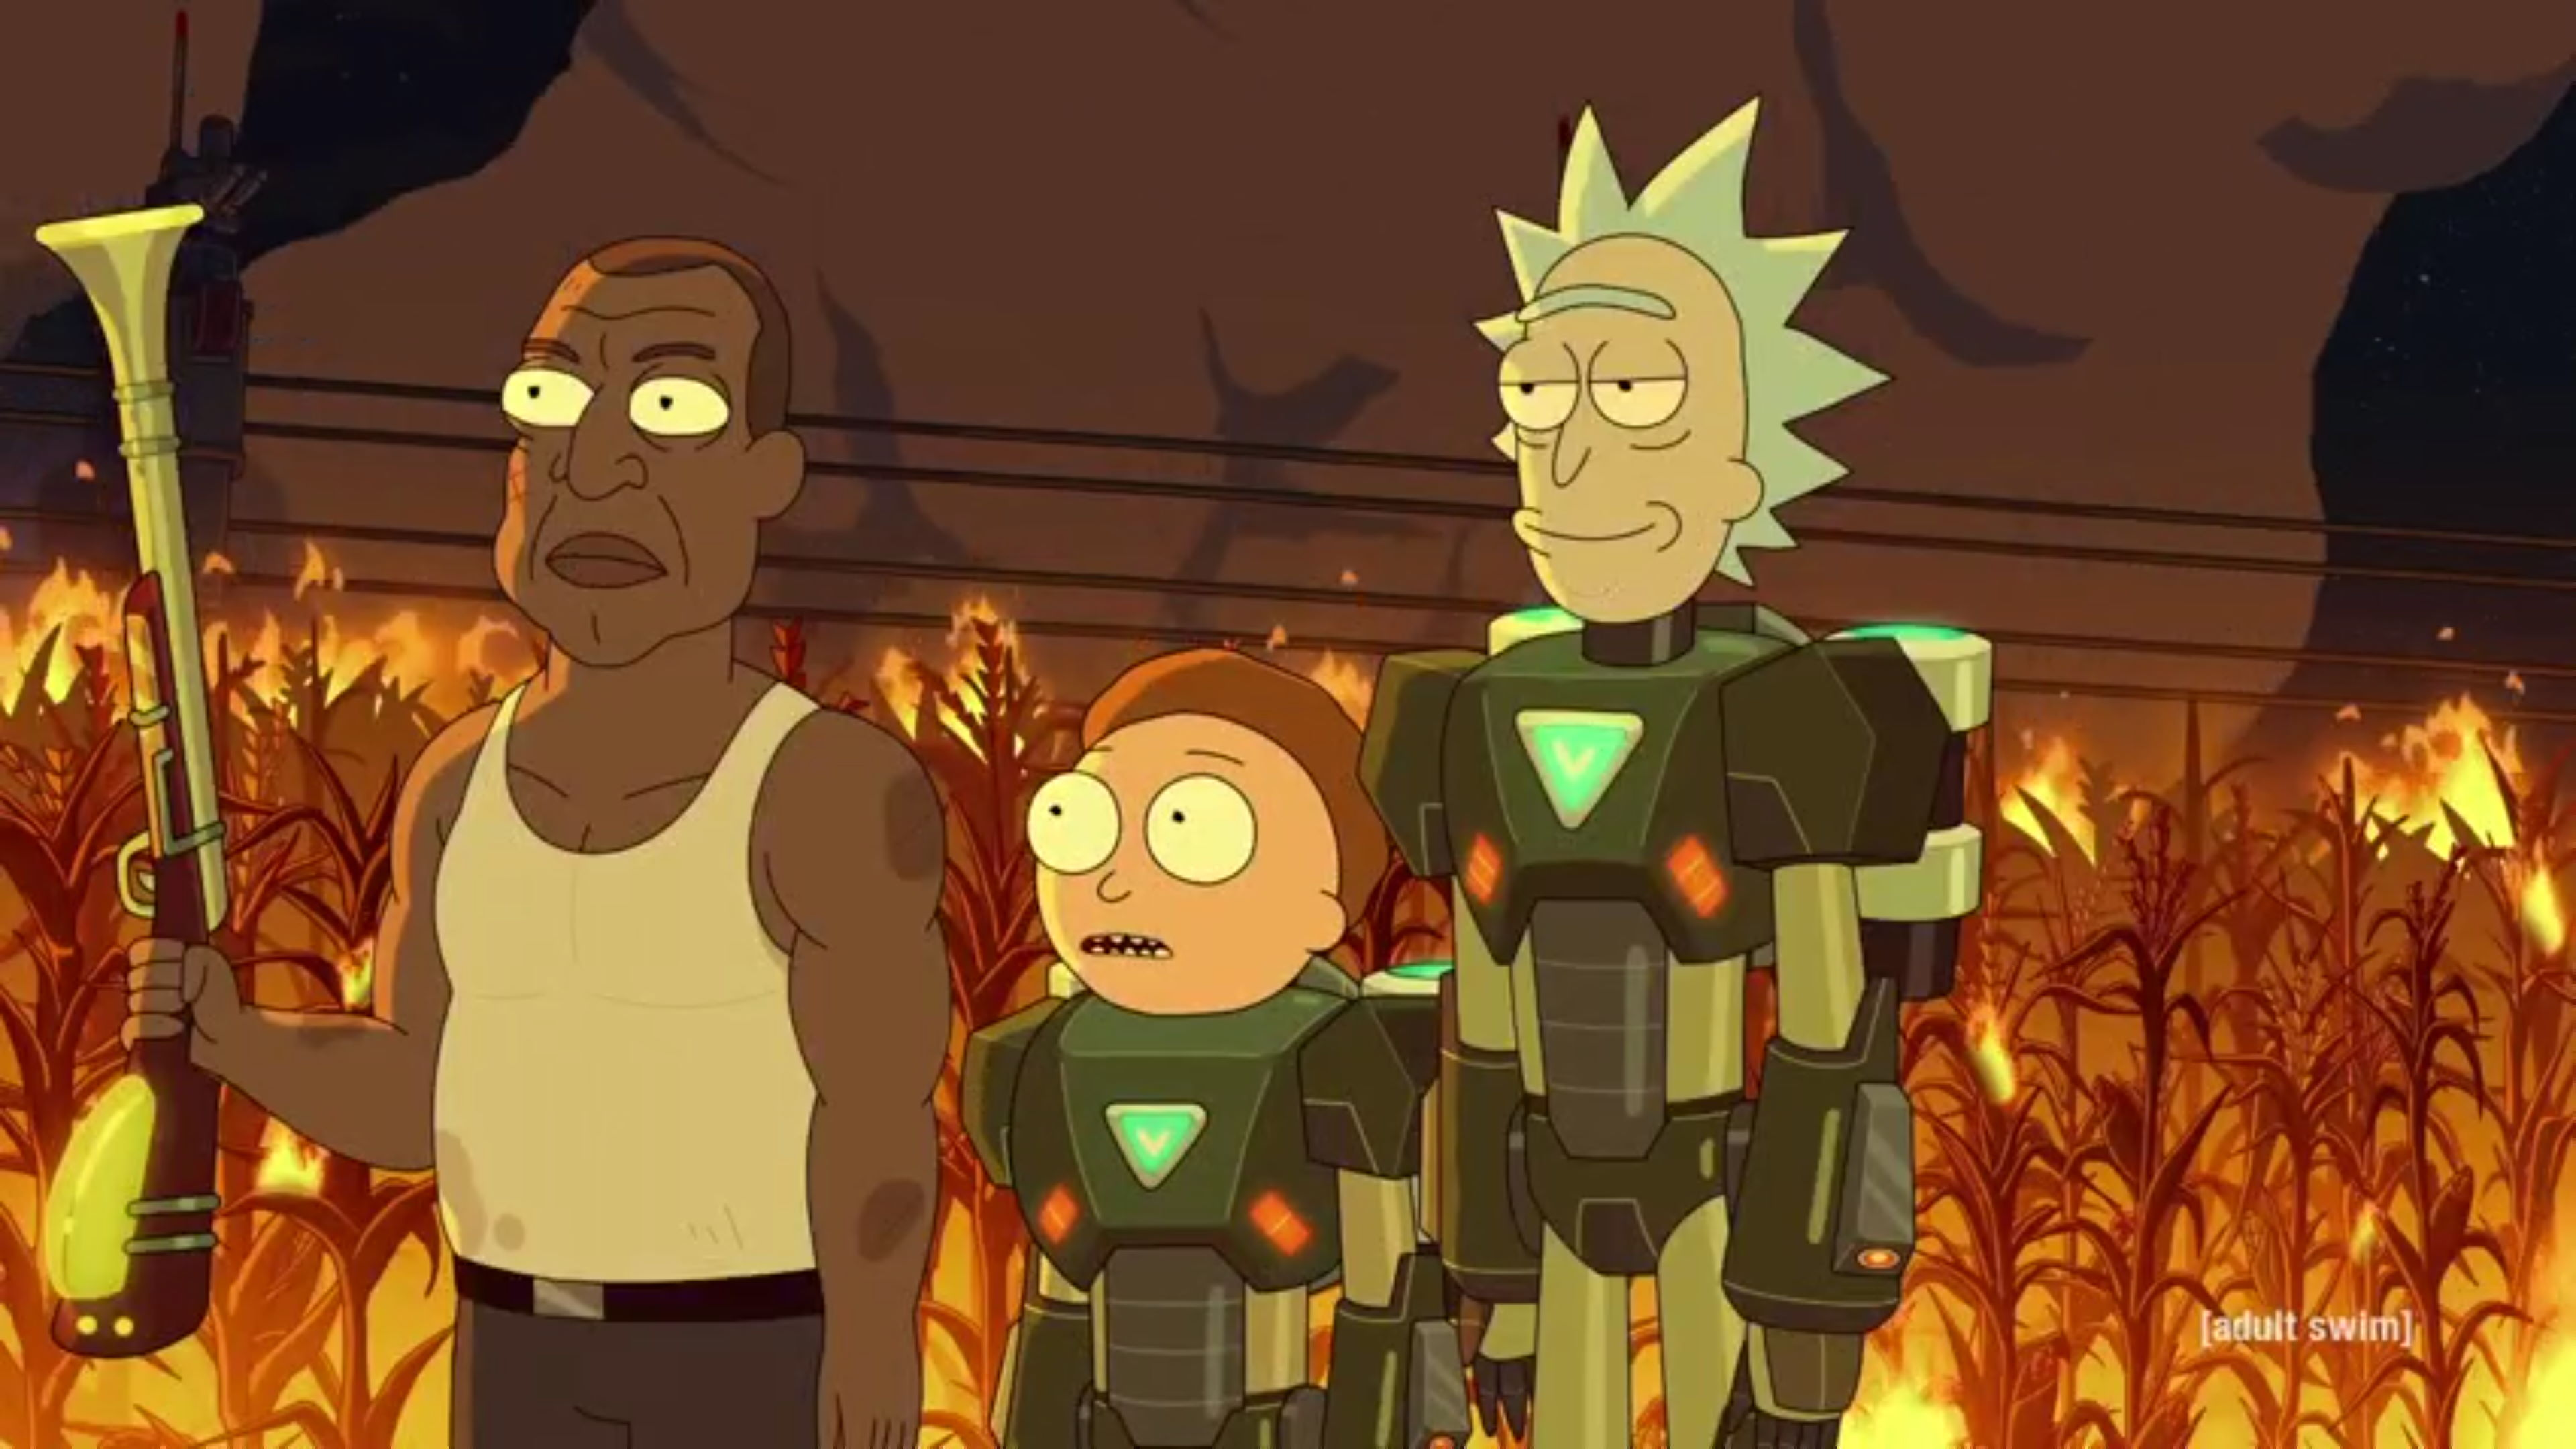 Rick and Morty Season 5 Episode 6 Review: Rick & Morty's Thanksploitation  Spectacular - Den of Geek